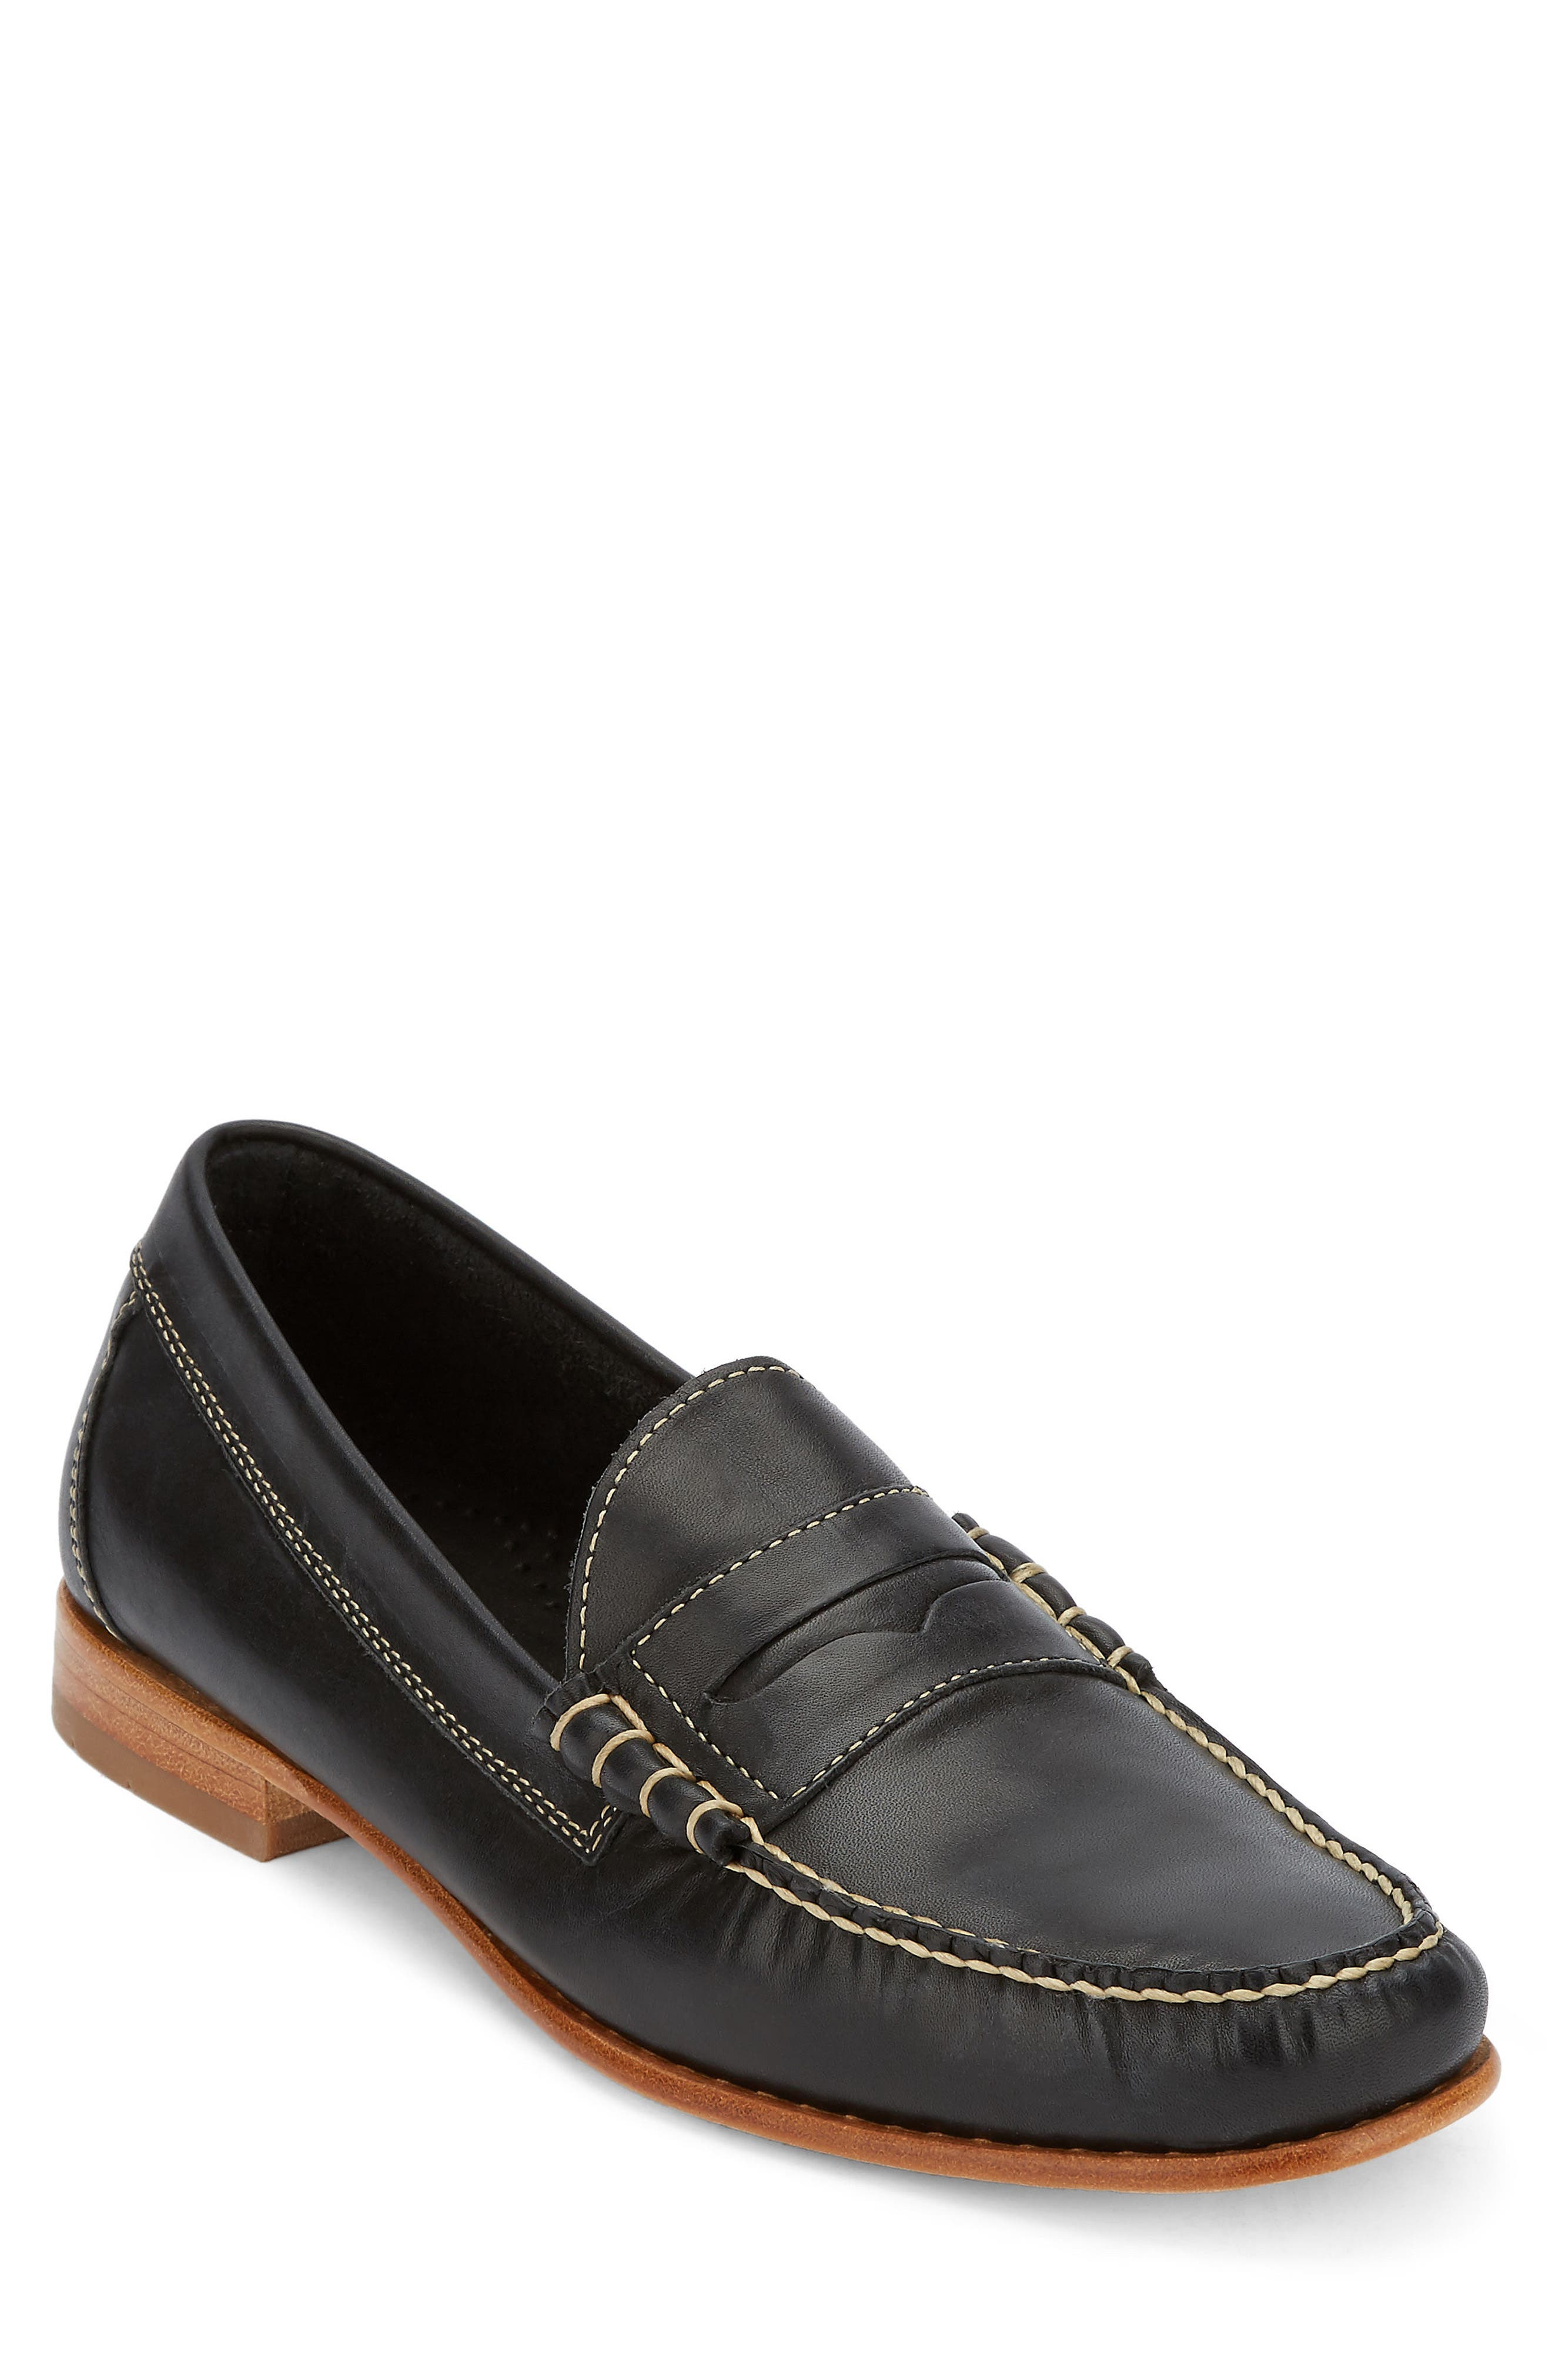 Weejuns Lambert Penny Loafer,                             Main thumbnail 1, color,                             001